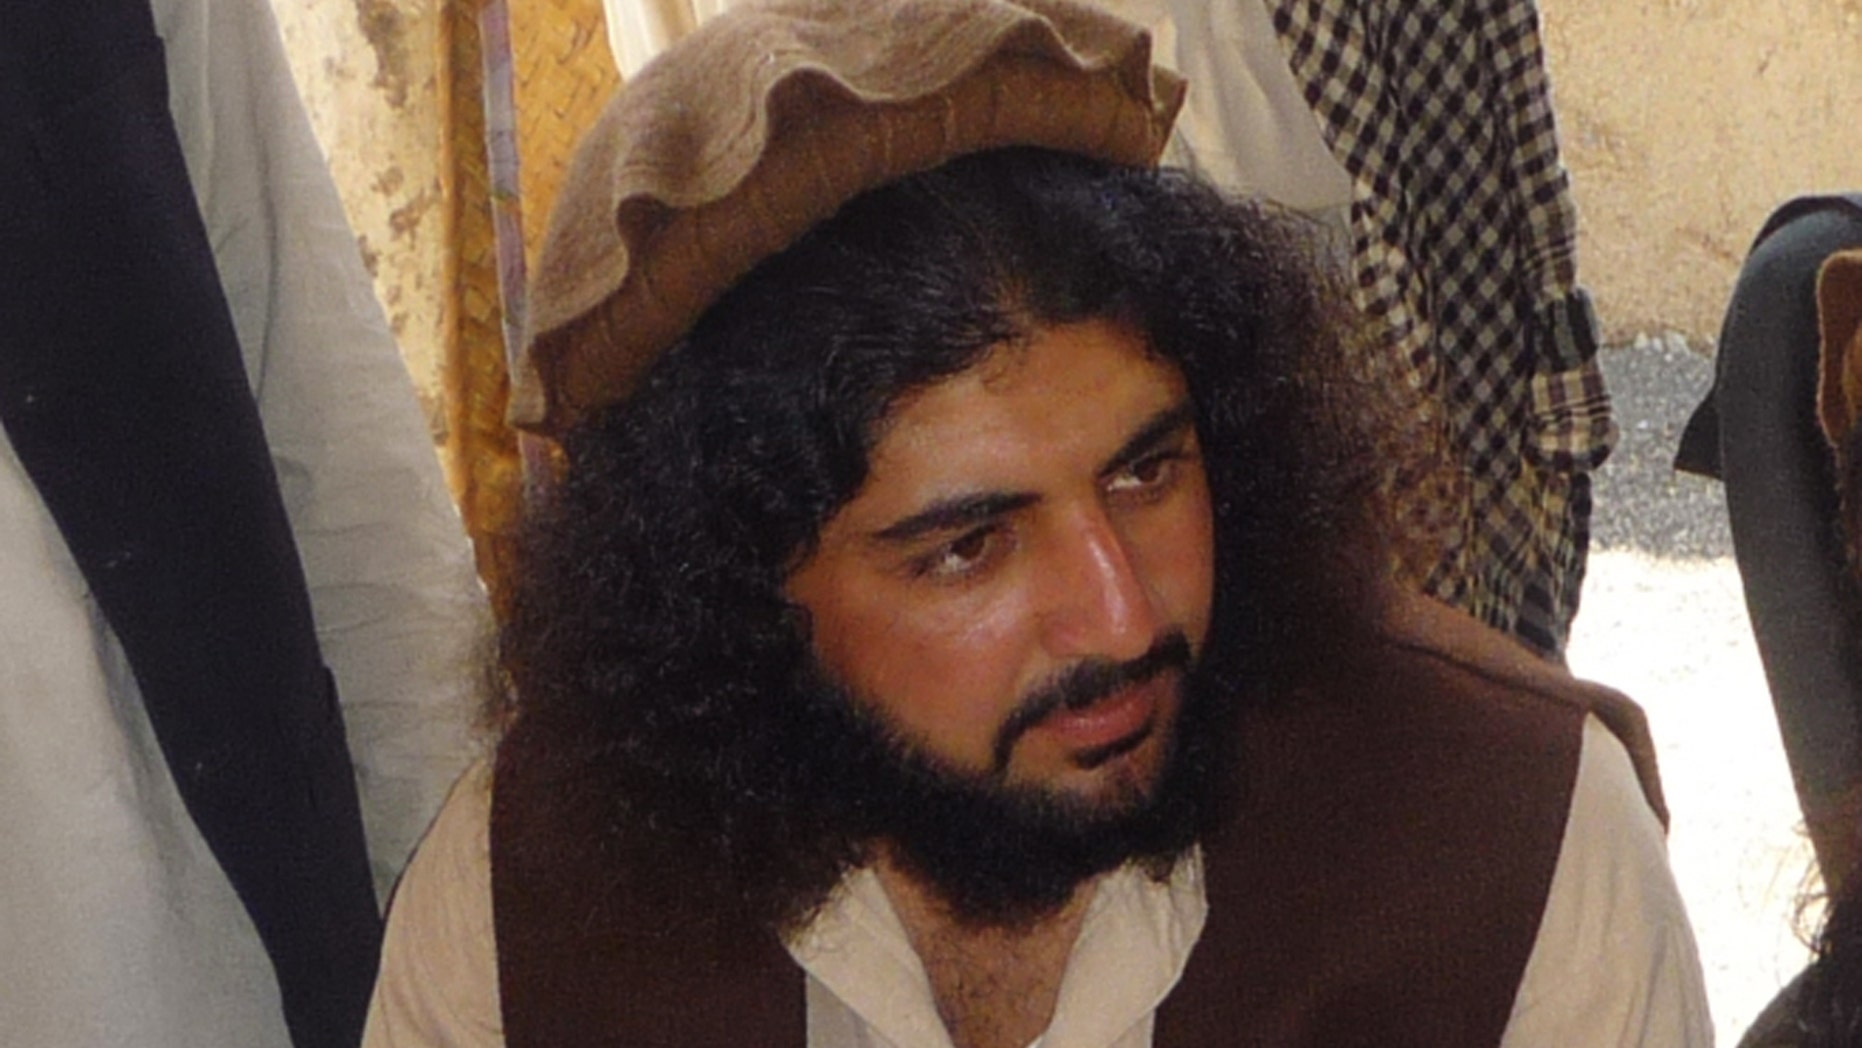 Oct. 4, 2009 - FILE photo of Pakistani Taliban commander Latif Mehsud  in Sararogha in south Waziristan in Pakistan. U.S. troops are holding the senior Pakistani Taliban commander they captured in Afghanistan a week ago, an Afghan provincial official said Friday,